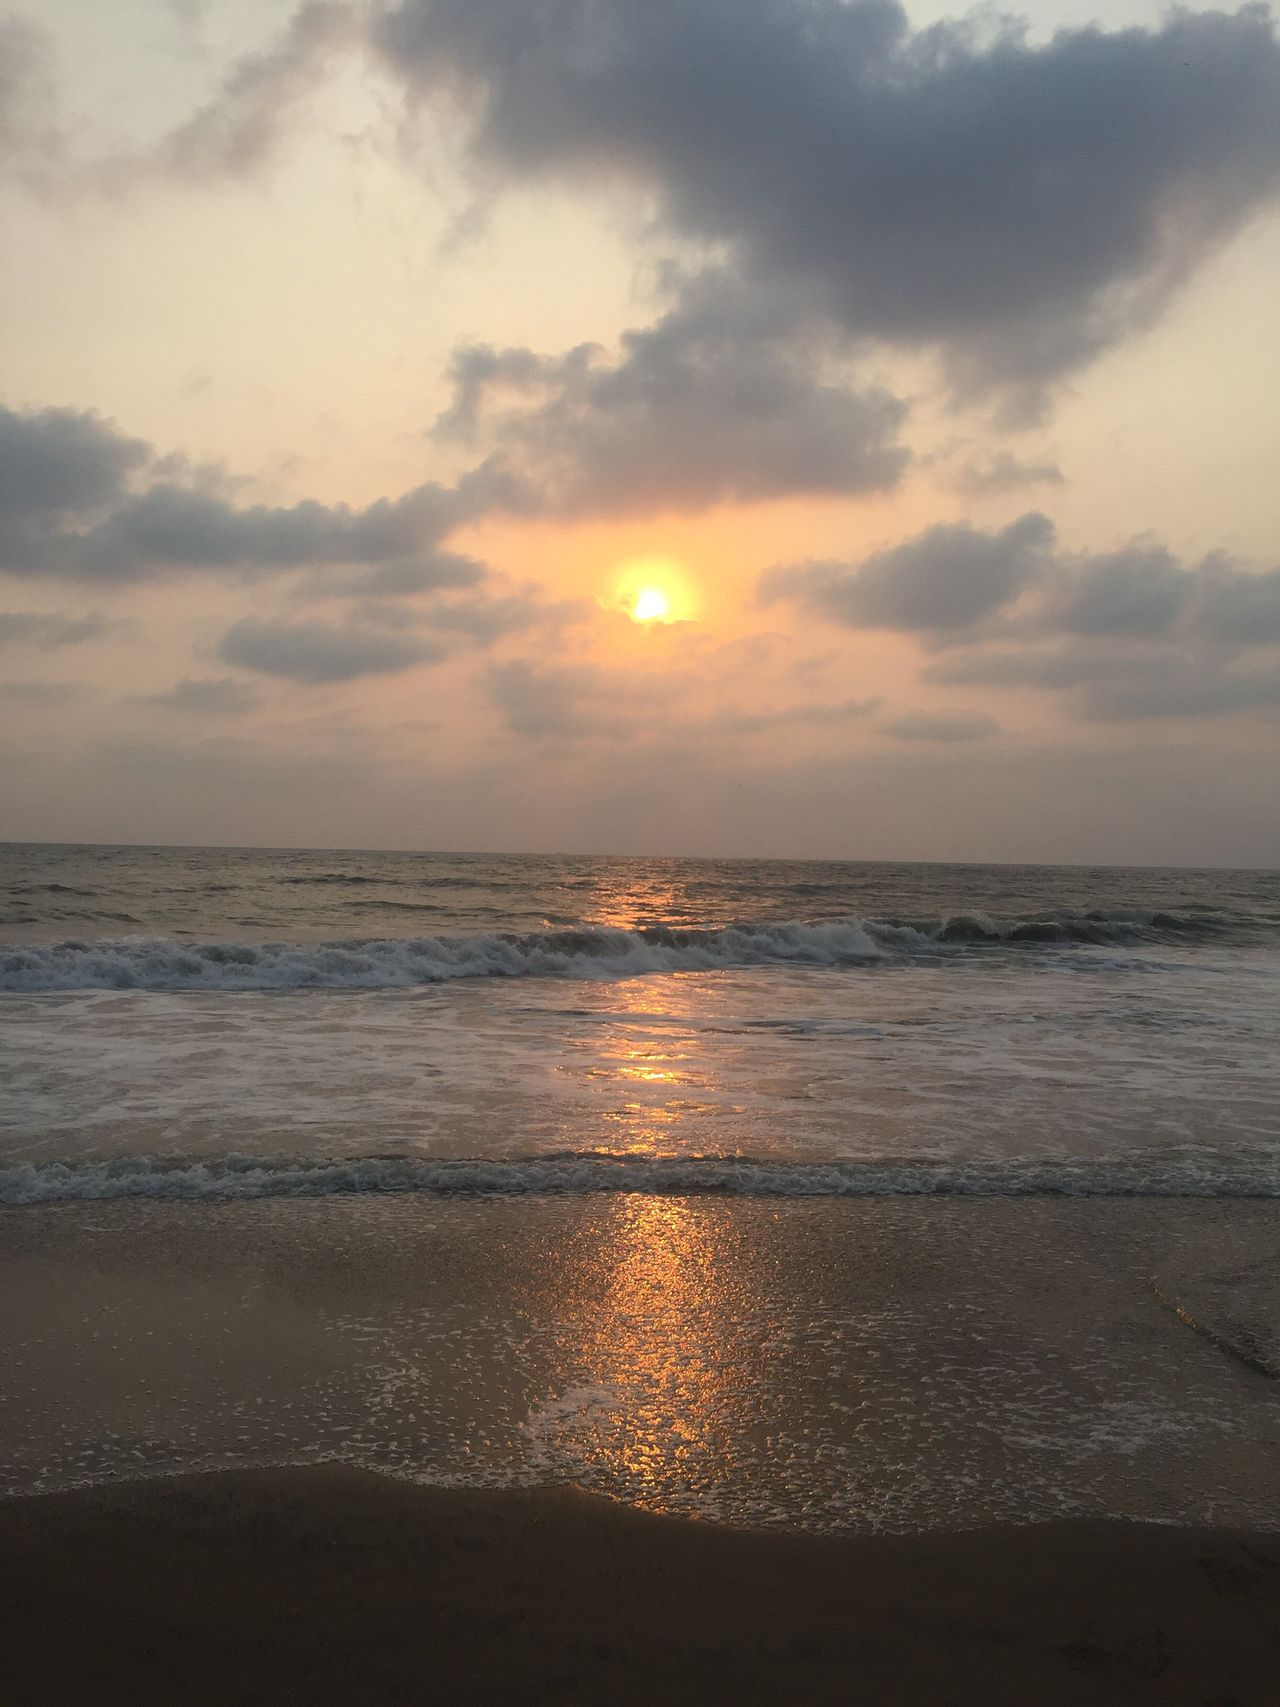 Sea Horizon Over Water Beach Sunset Water Sky Nature Beauty In Nature Scenics Tranquility Tranquil Scene Shore No People Sand Cloud - Sky Sun Outdoors Day